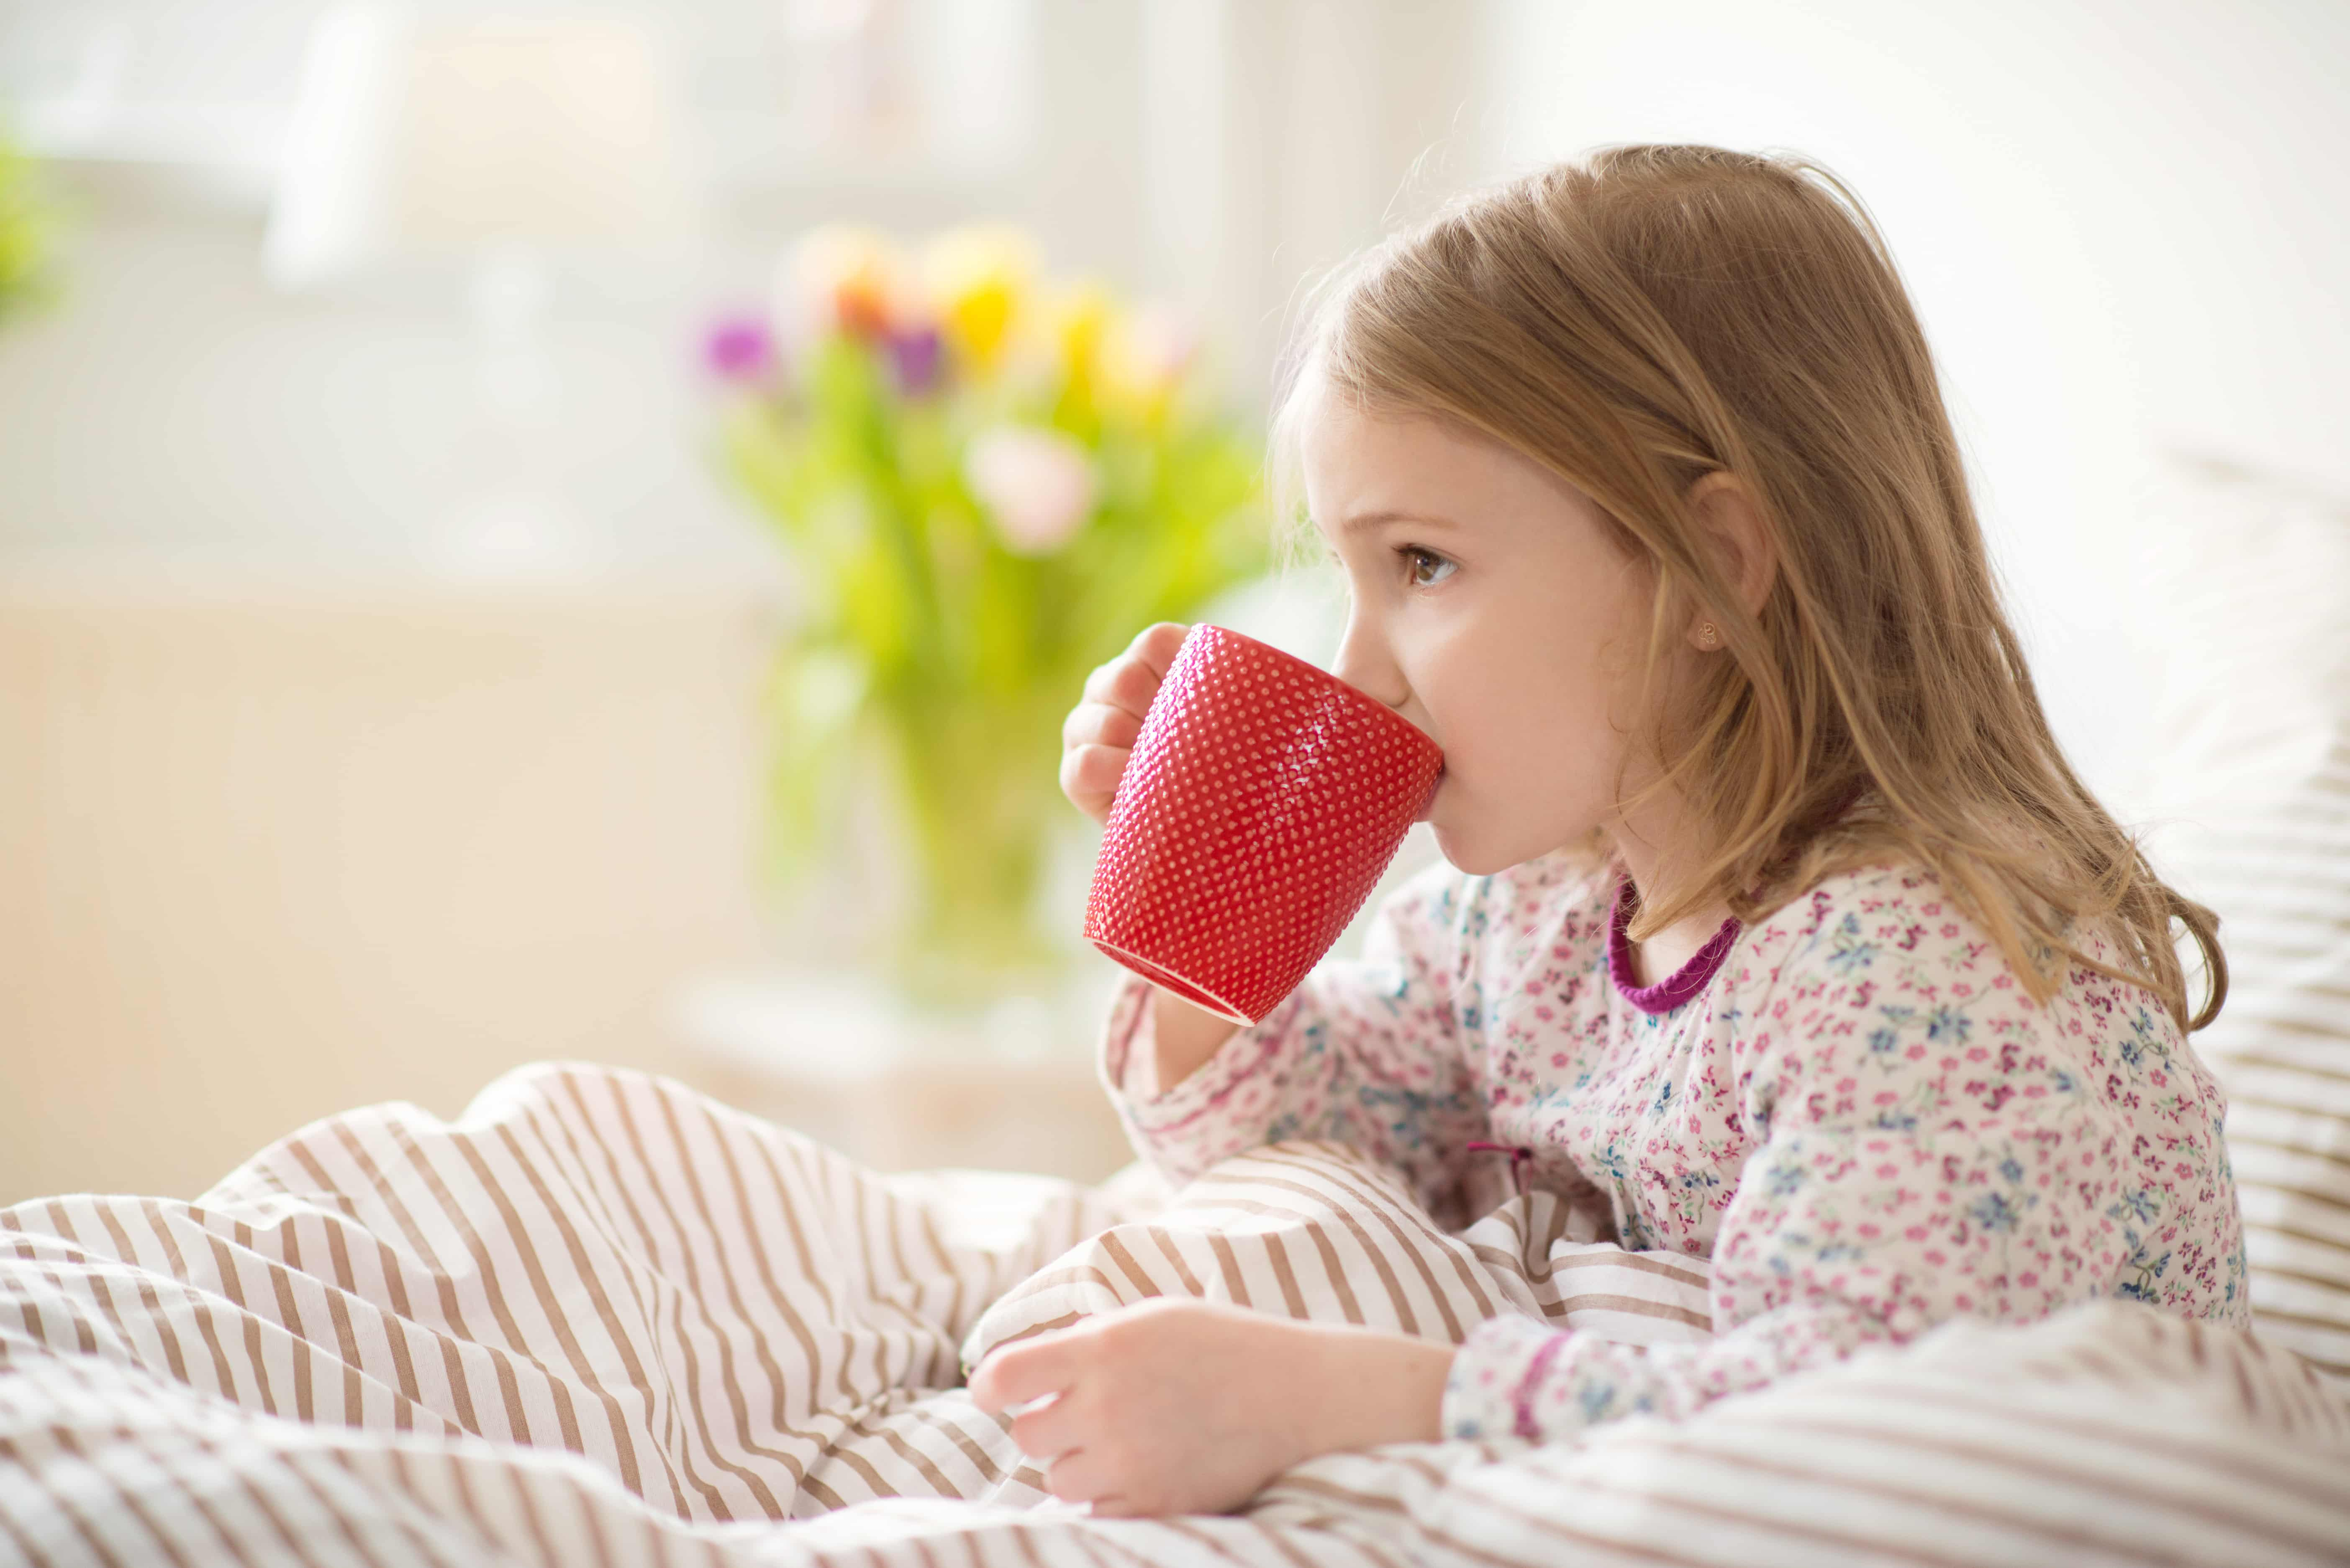 Natural ways to build your child's immunity